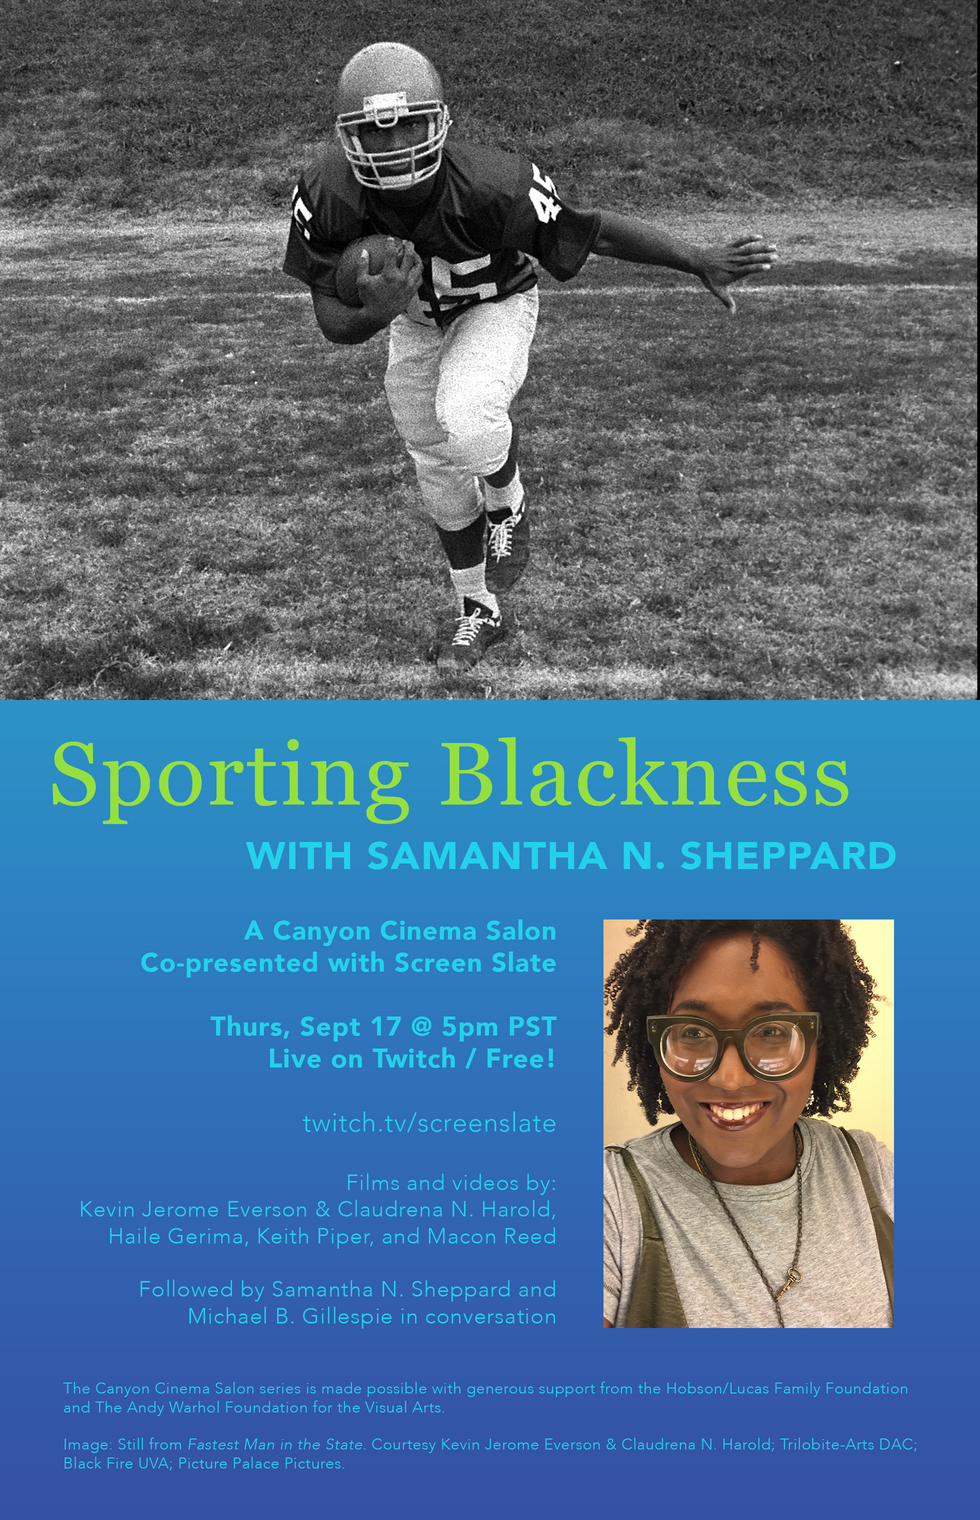 Sporting Blackness with Samantha N. Sheppard